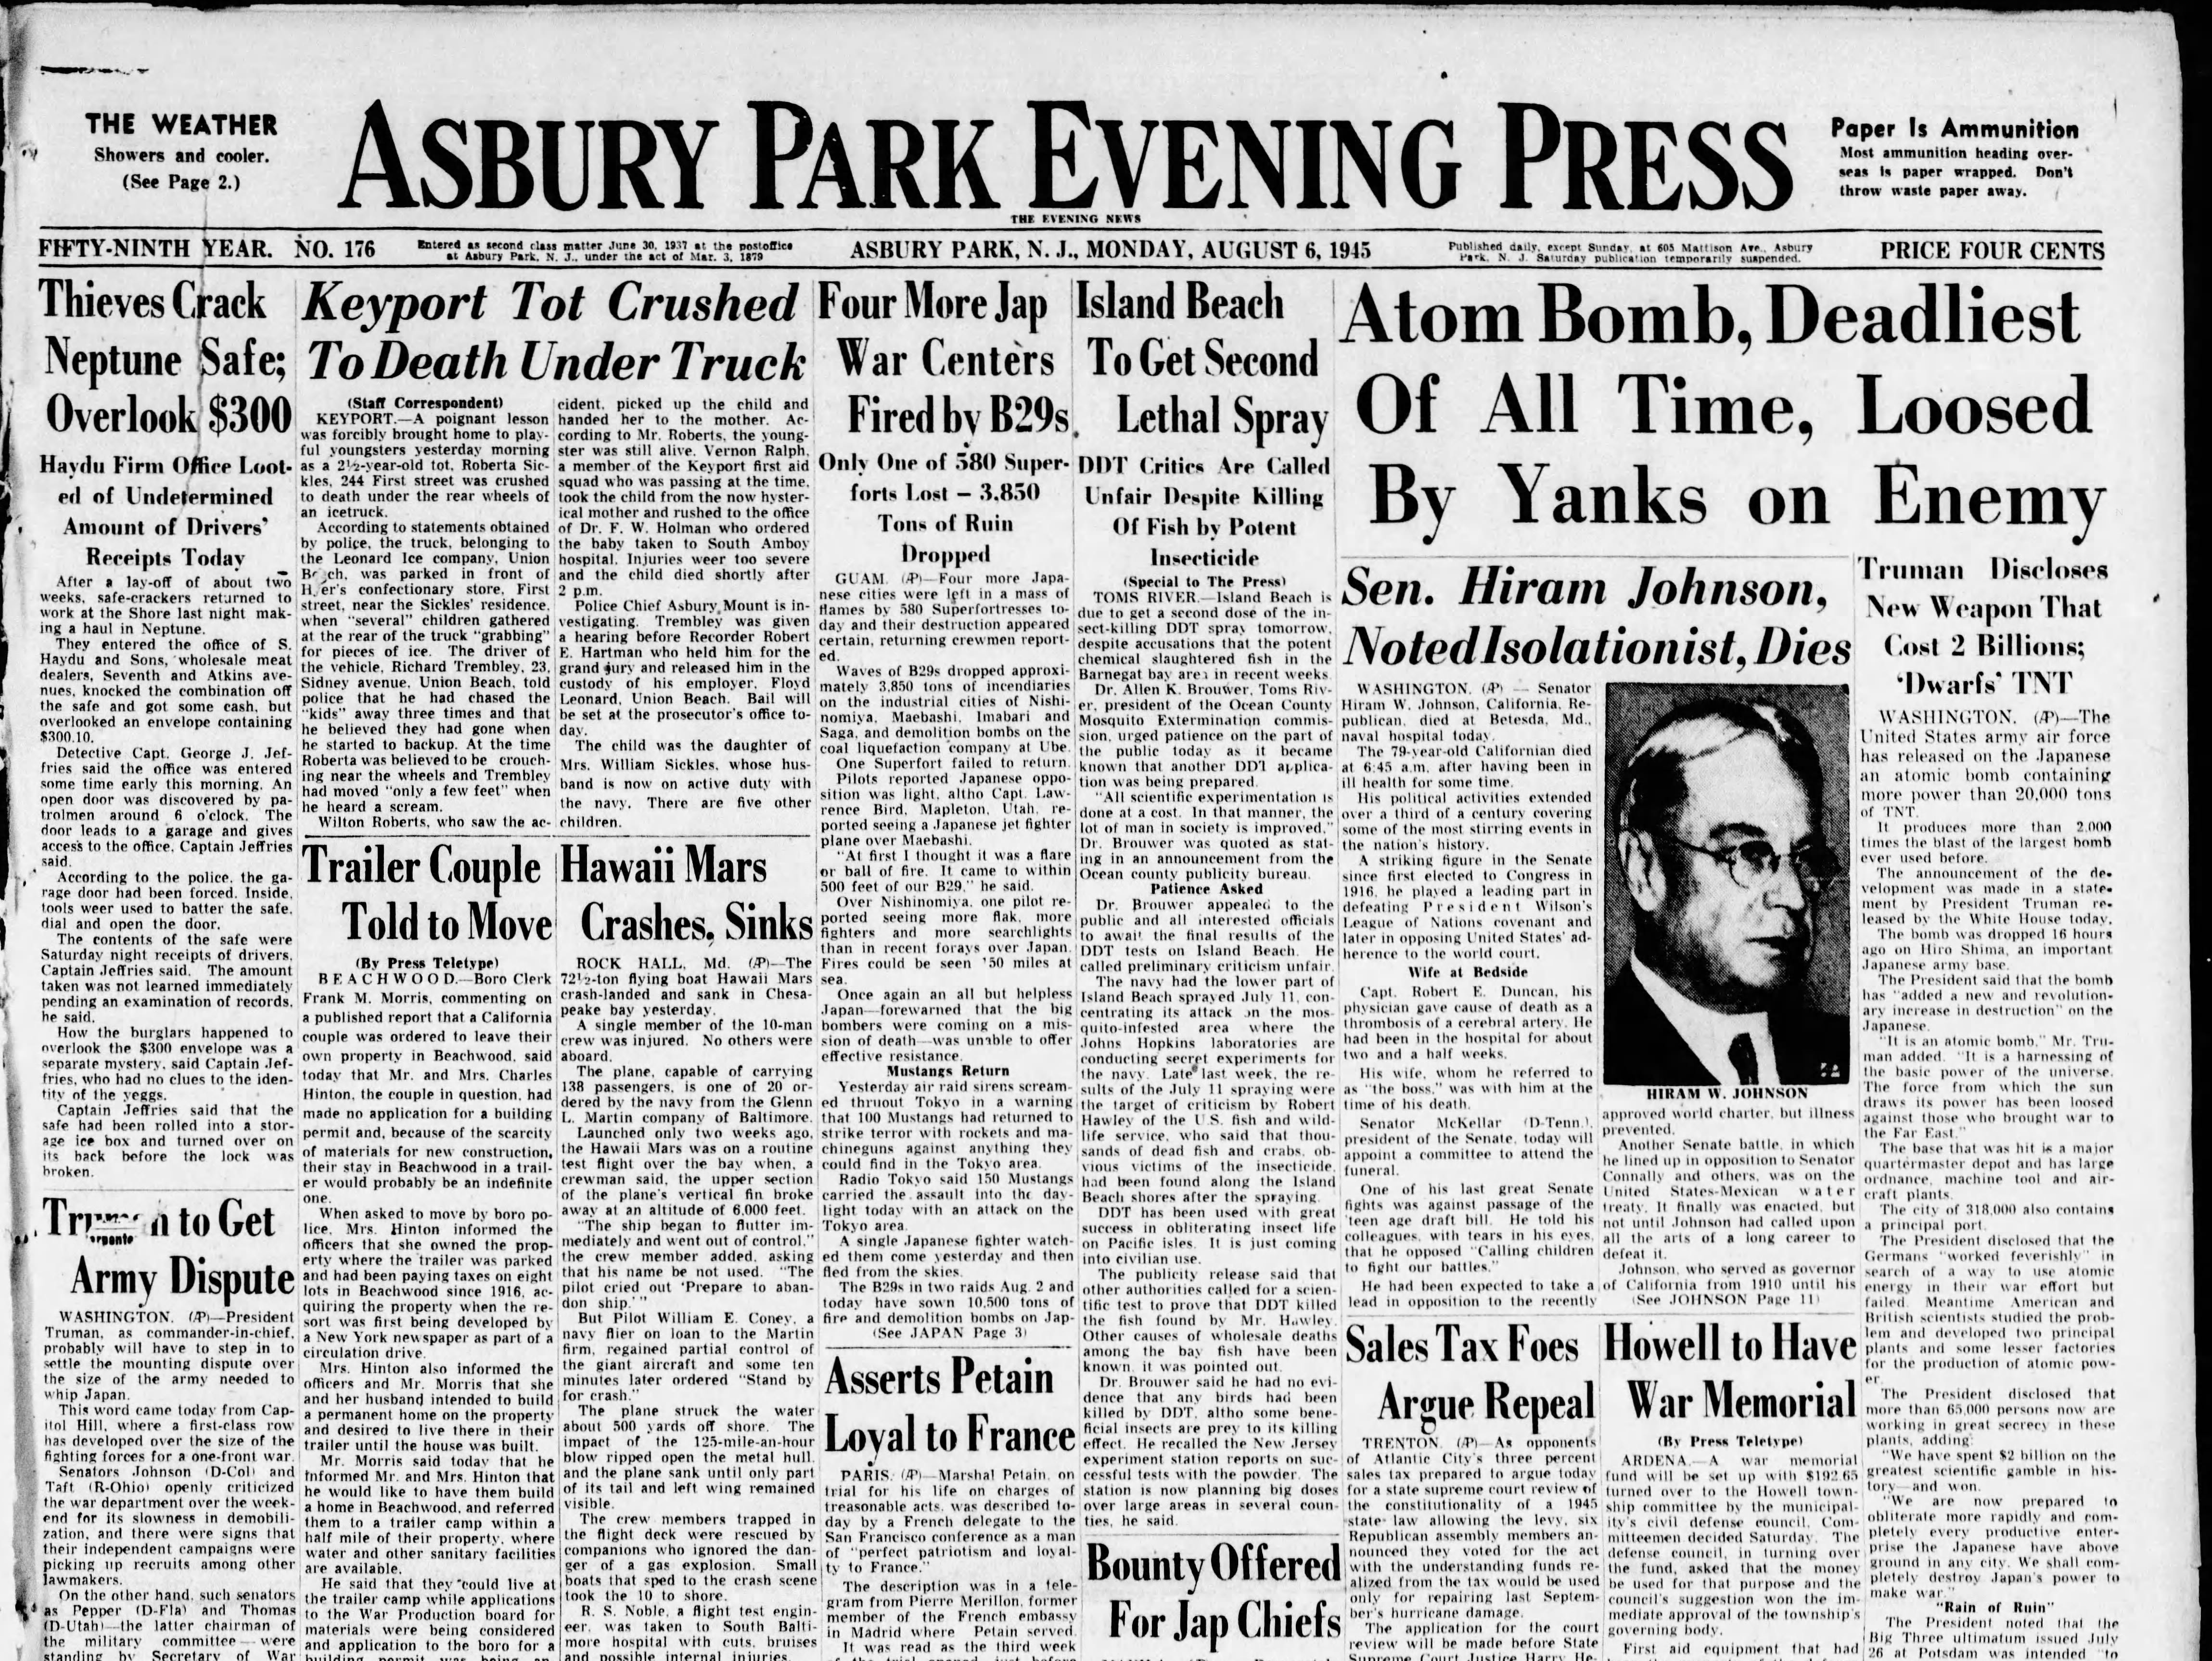 """President Harry S. Truman discloses the existence of a powerful new """"atom bomb,"""" capable of wiping out entire cities, that was used for the first time, earlier in the day, on the Japanese city of Hiroshima on this Monday, Aug. 6, 1945."""